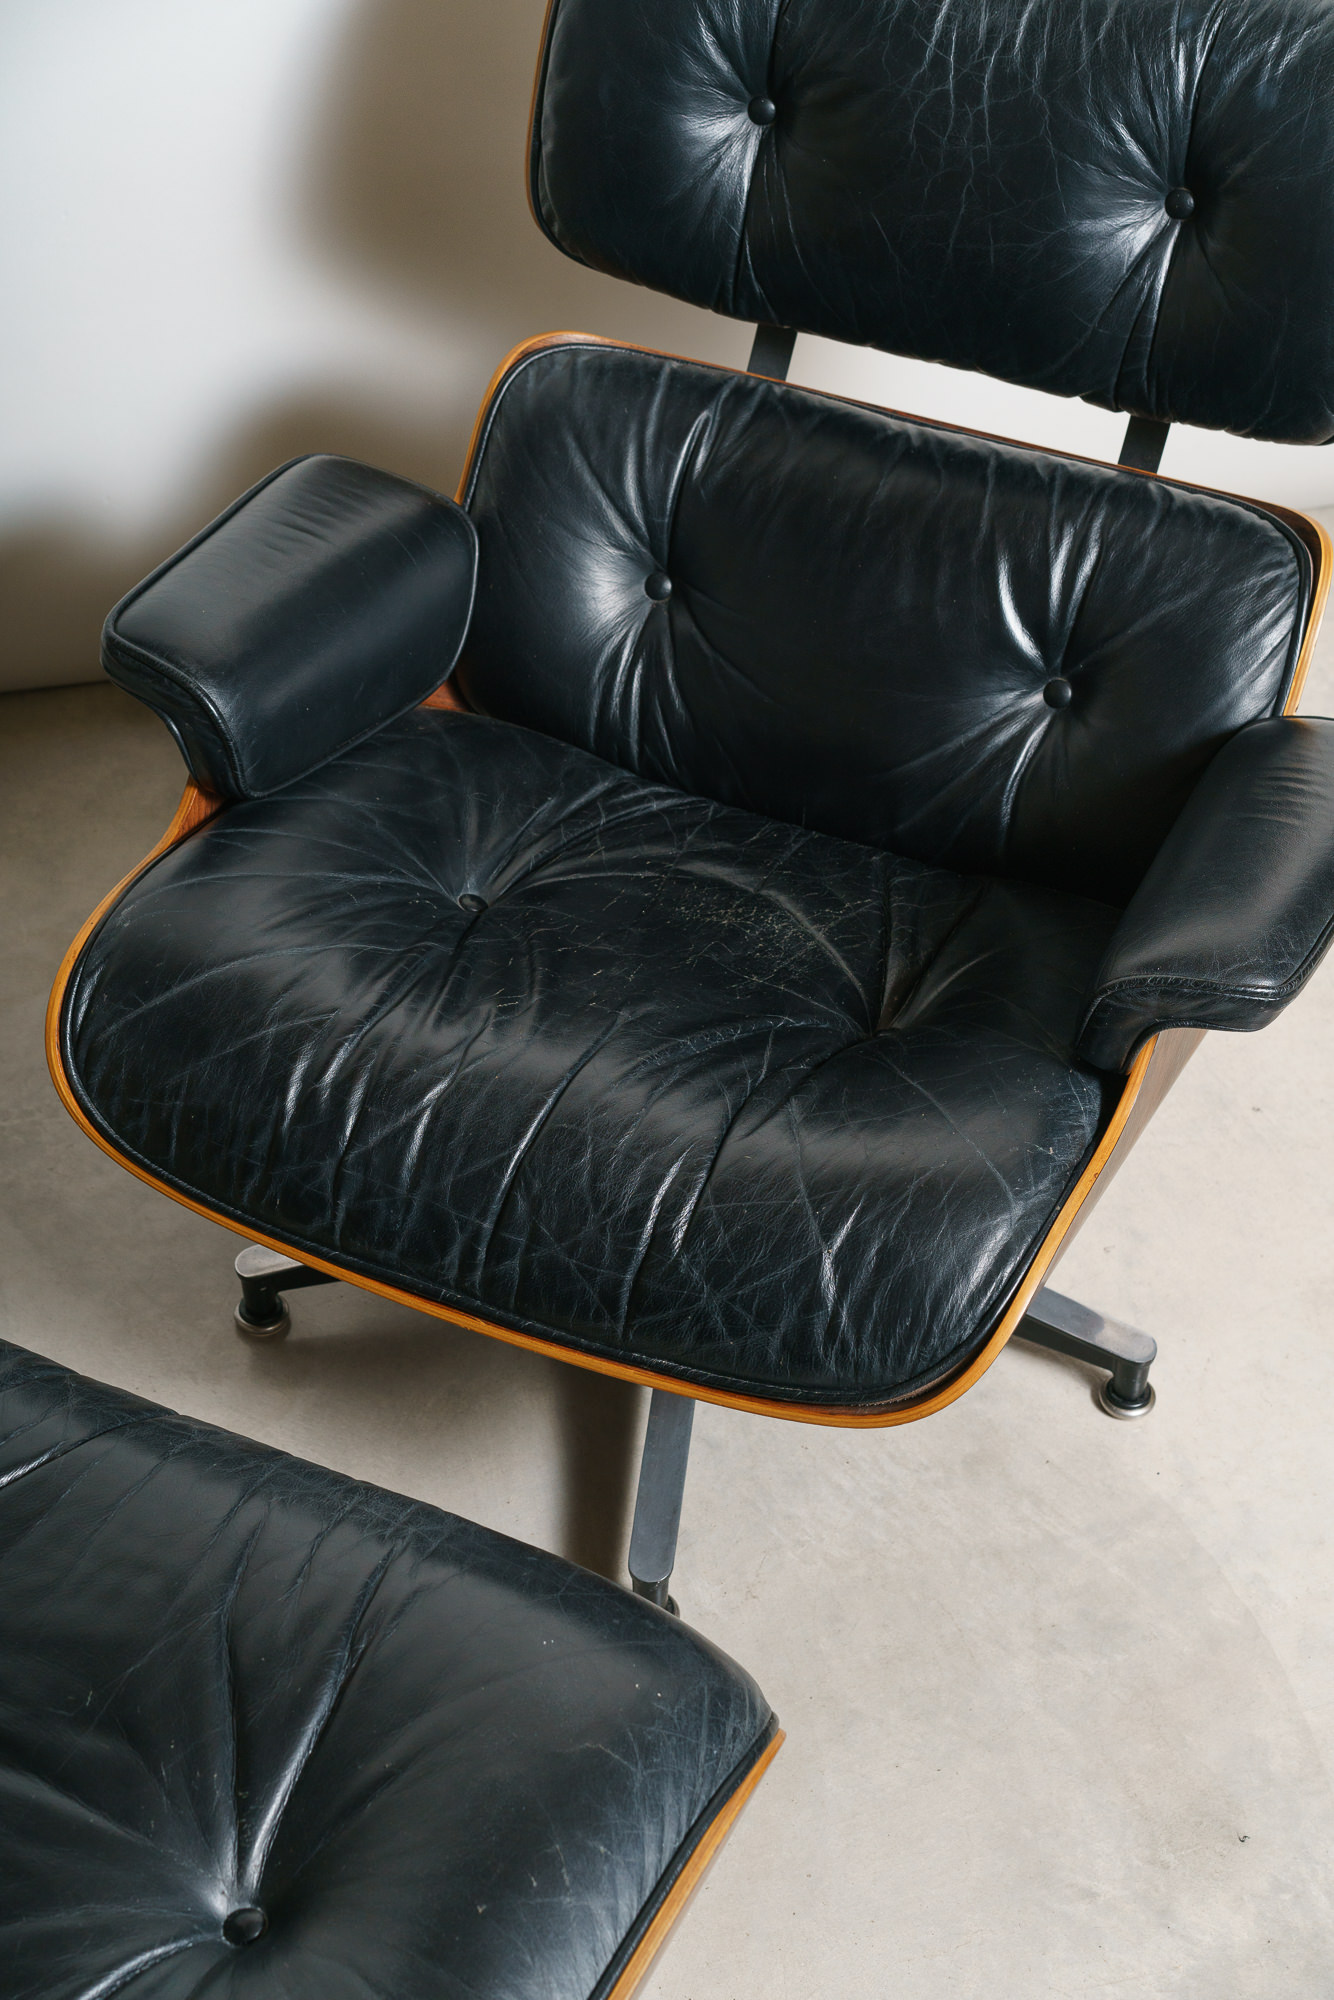 Eames Rosewood and Leather Lounge Chair - $4300